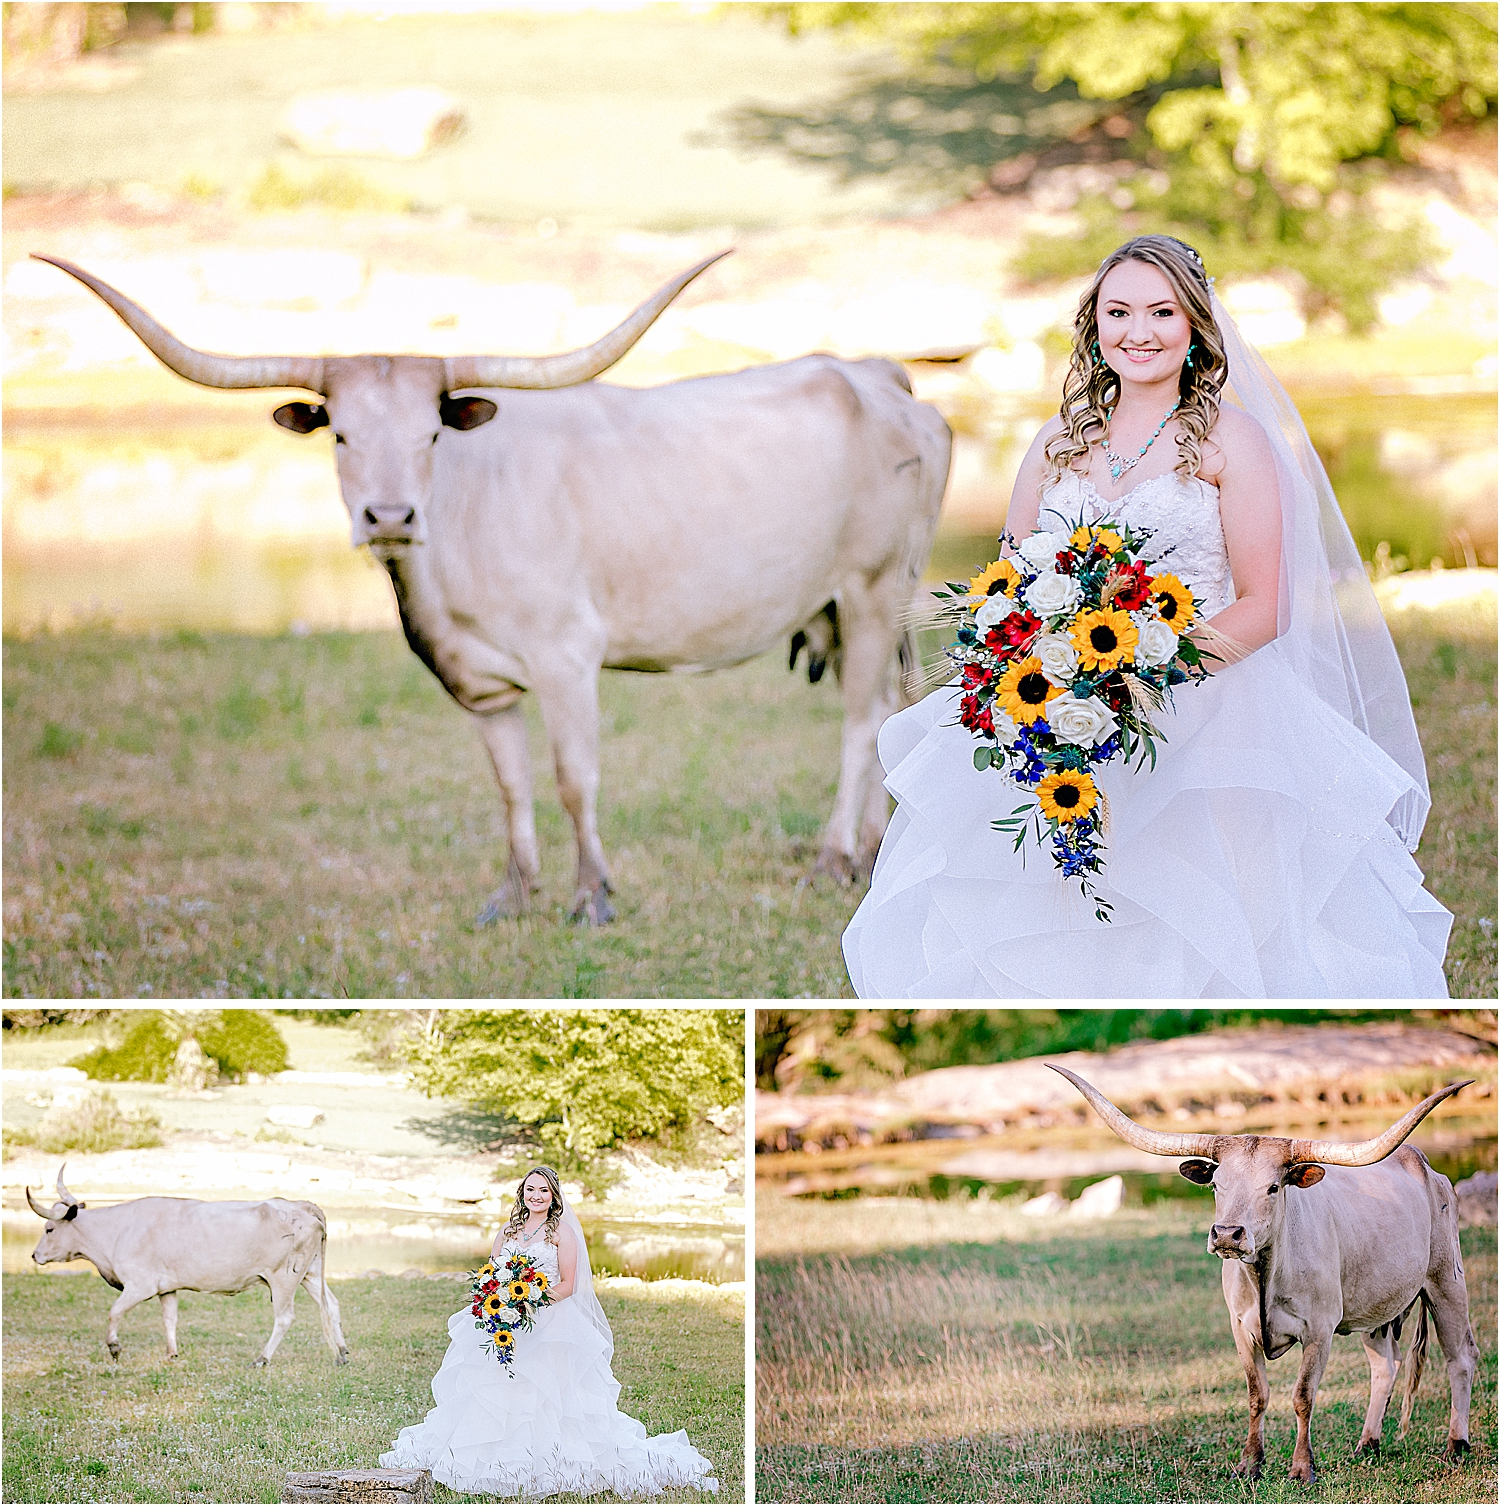 Carly-Barton-Photography-Texas-Bridals-Boerne-Rustic-Wedding-Photos_0002.jpg